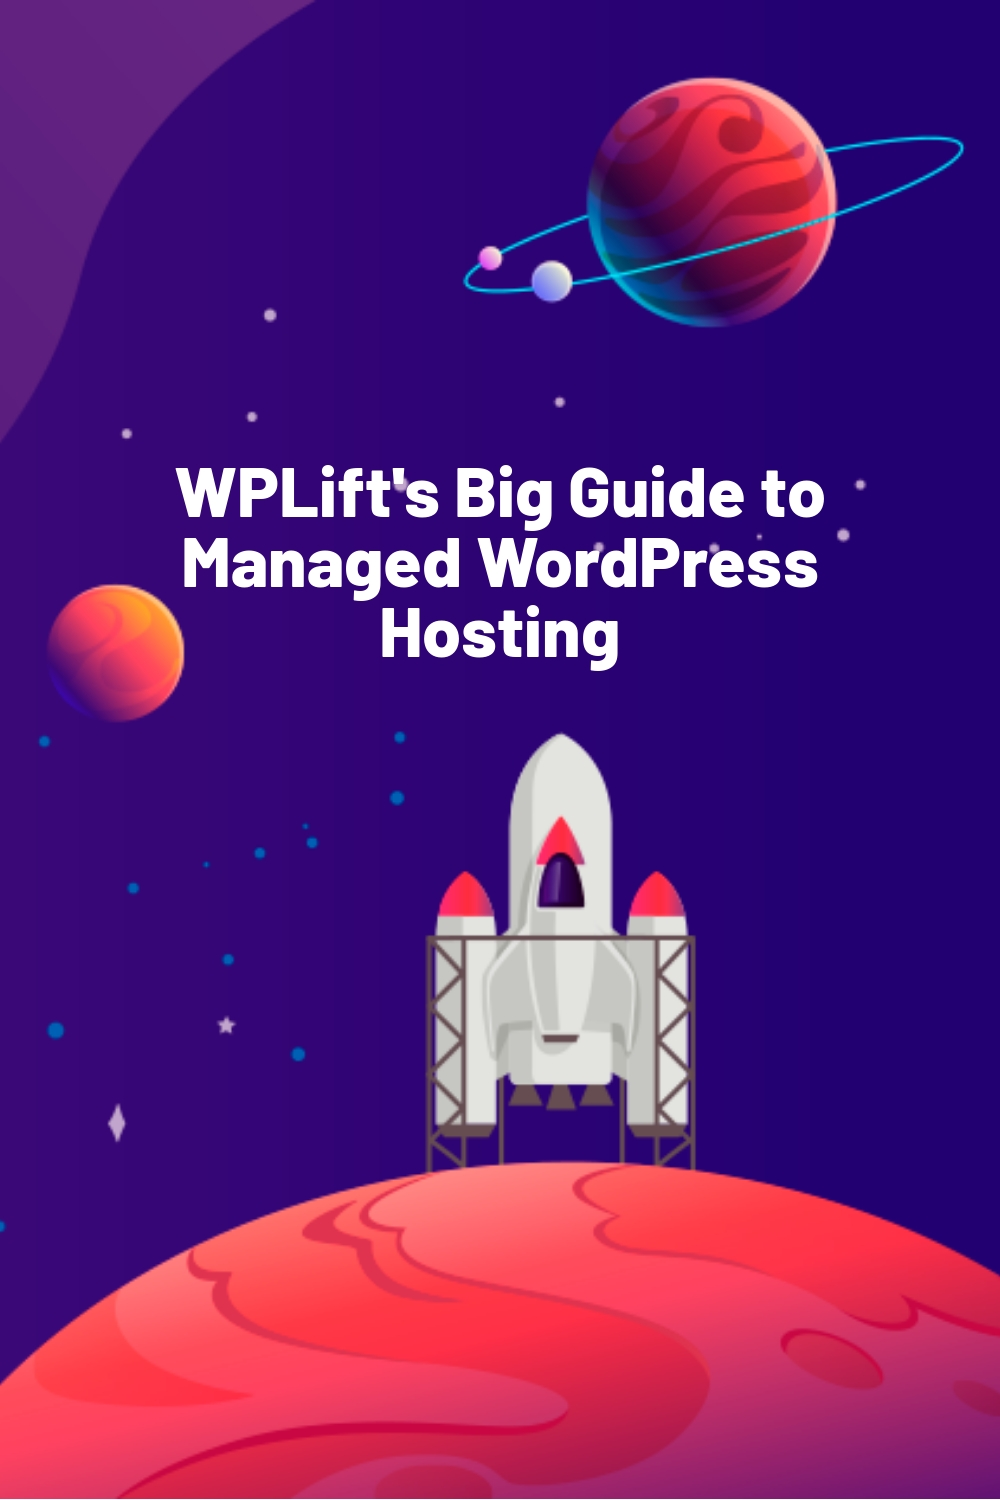 WPLift's Big Guide to Managed WordPress Hosting